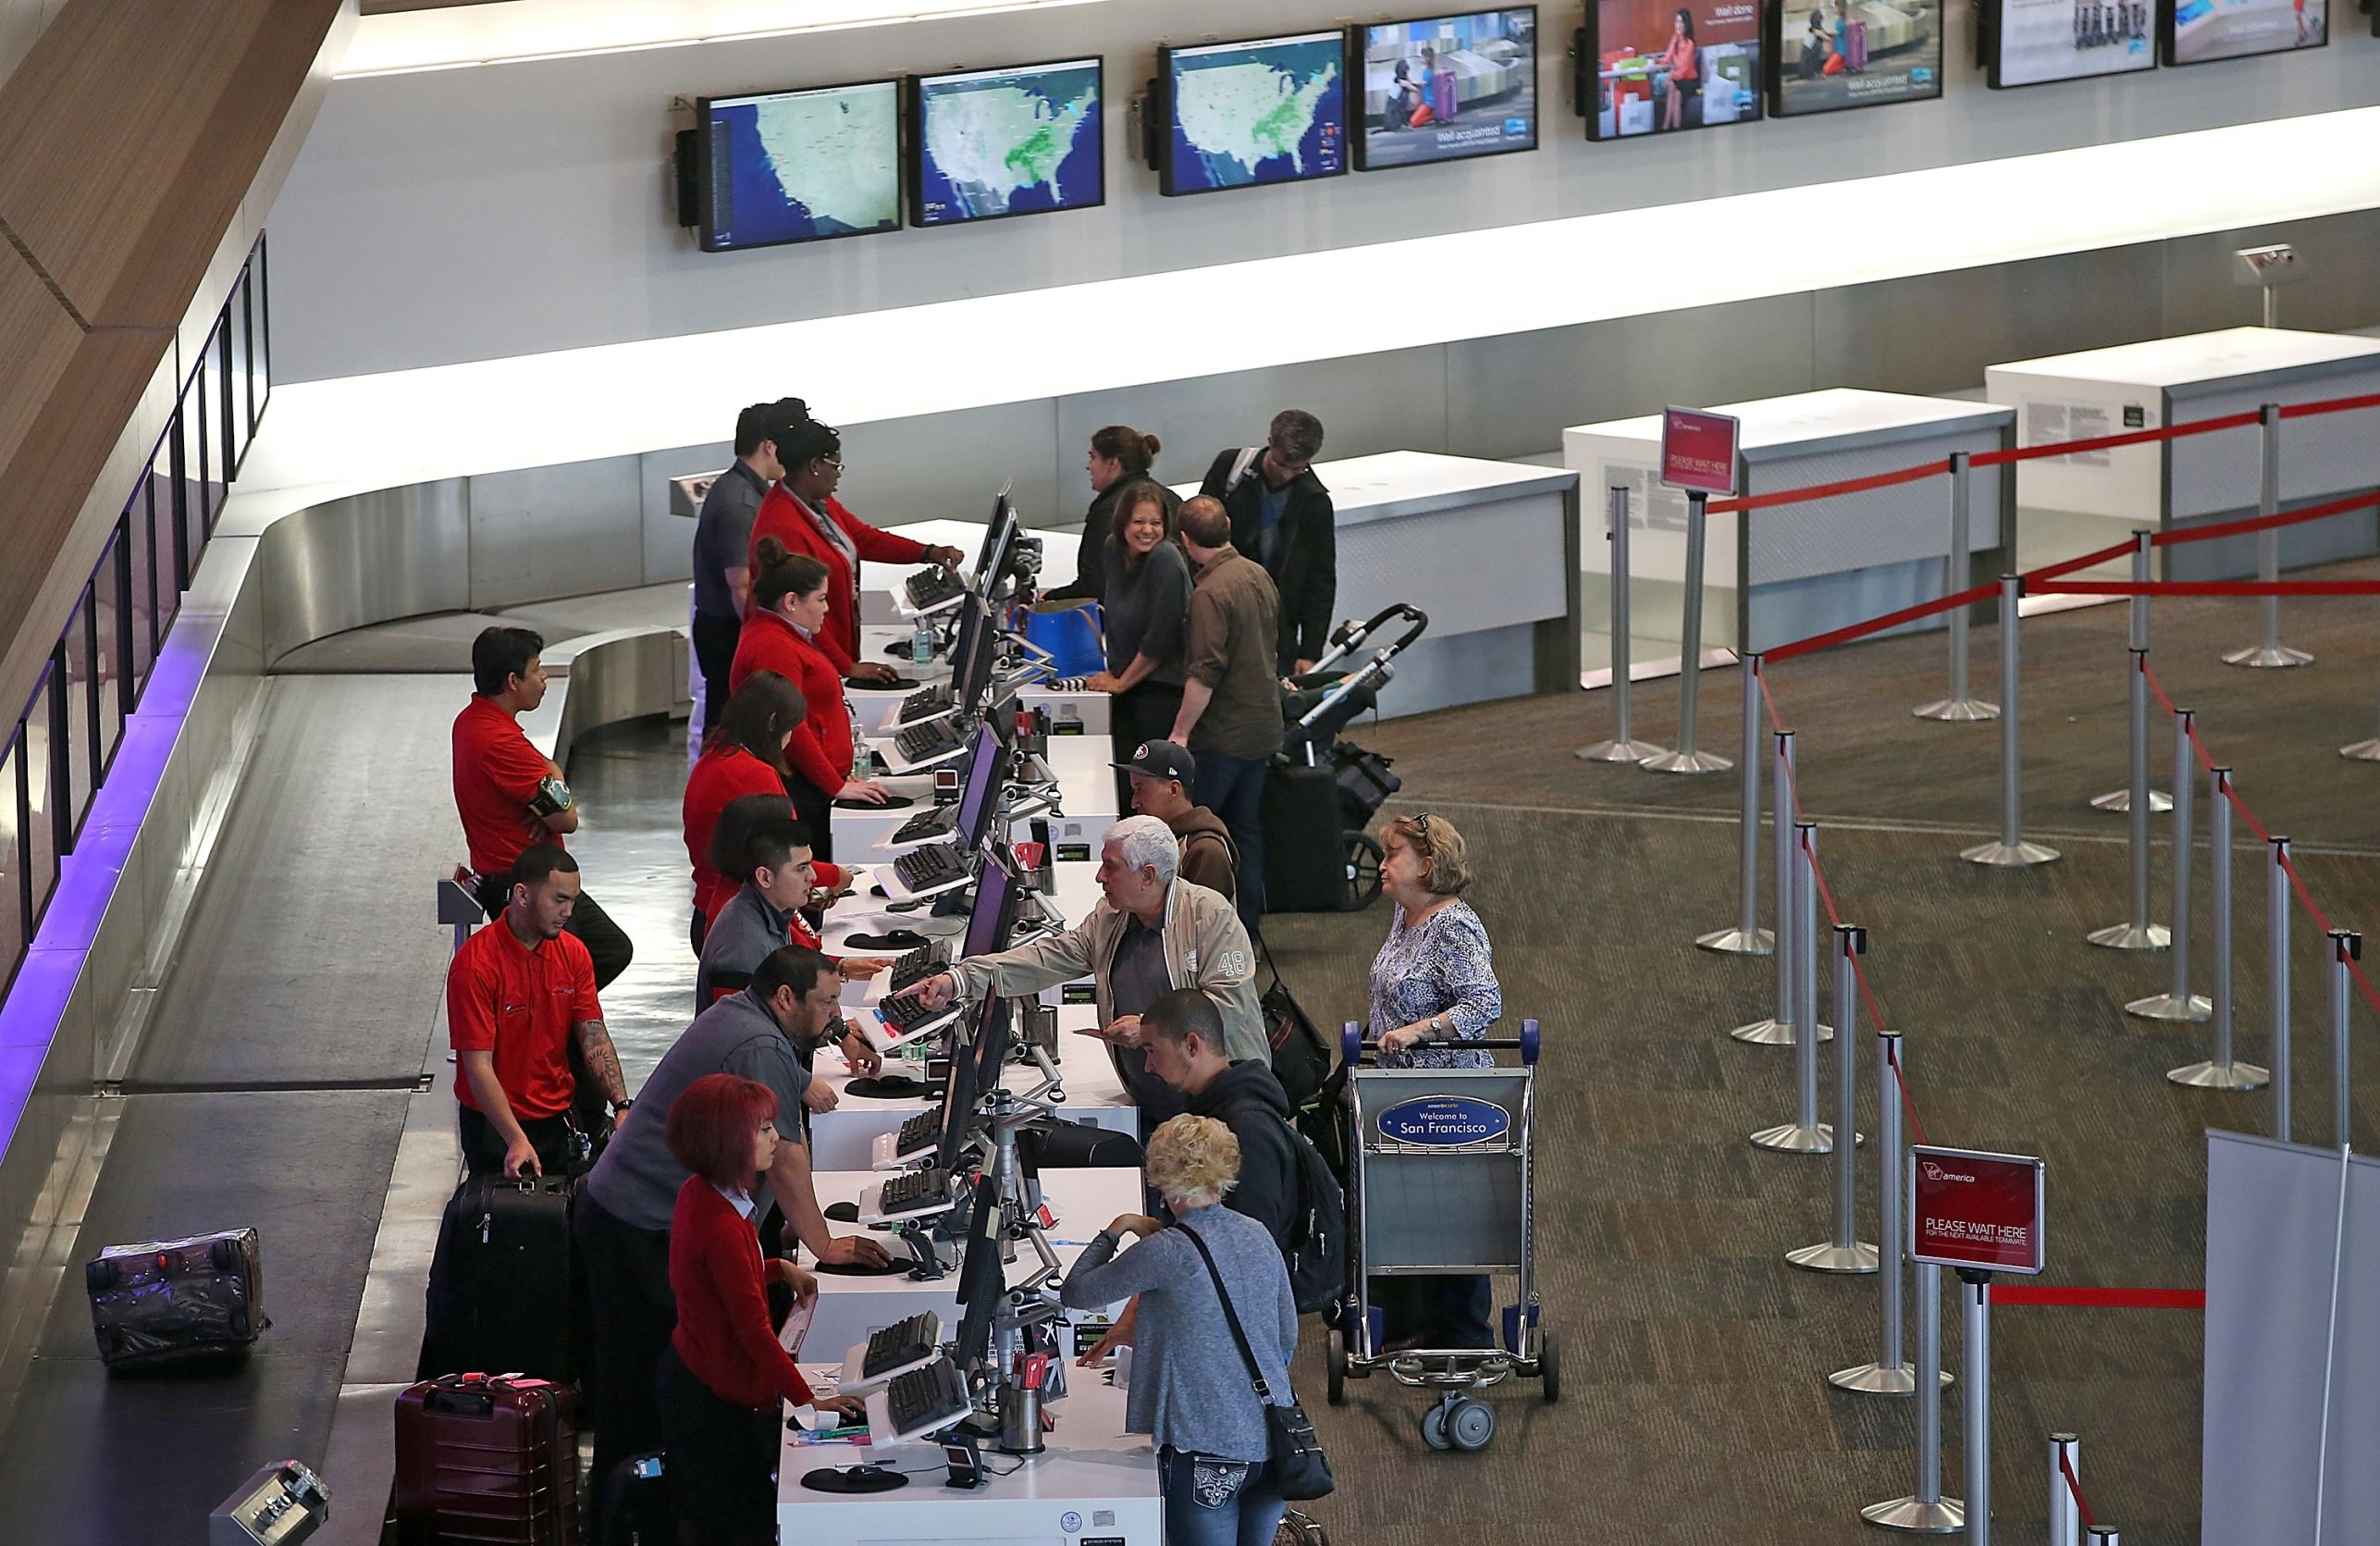 SAN FRANCISCO, CA - MARCH 13: Passengers check in for Virgin America flights inside terminal two at San Francisco International Airport on March 13, 2015 in San Francisco, California. According to a passenger survery conducted by SkyTrax, San Francisco International Airport (SFO) was been named the best airport in North America for customer service. SkyTrax collected over 13 million questionnaires at 550 airports around the world. (Photo by Justin Sullivan/Getty Images)